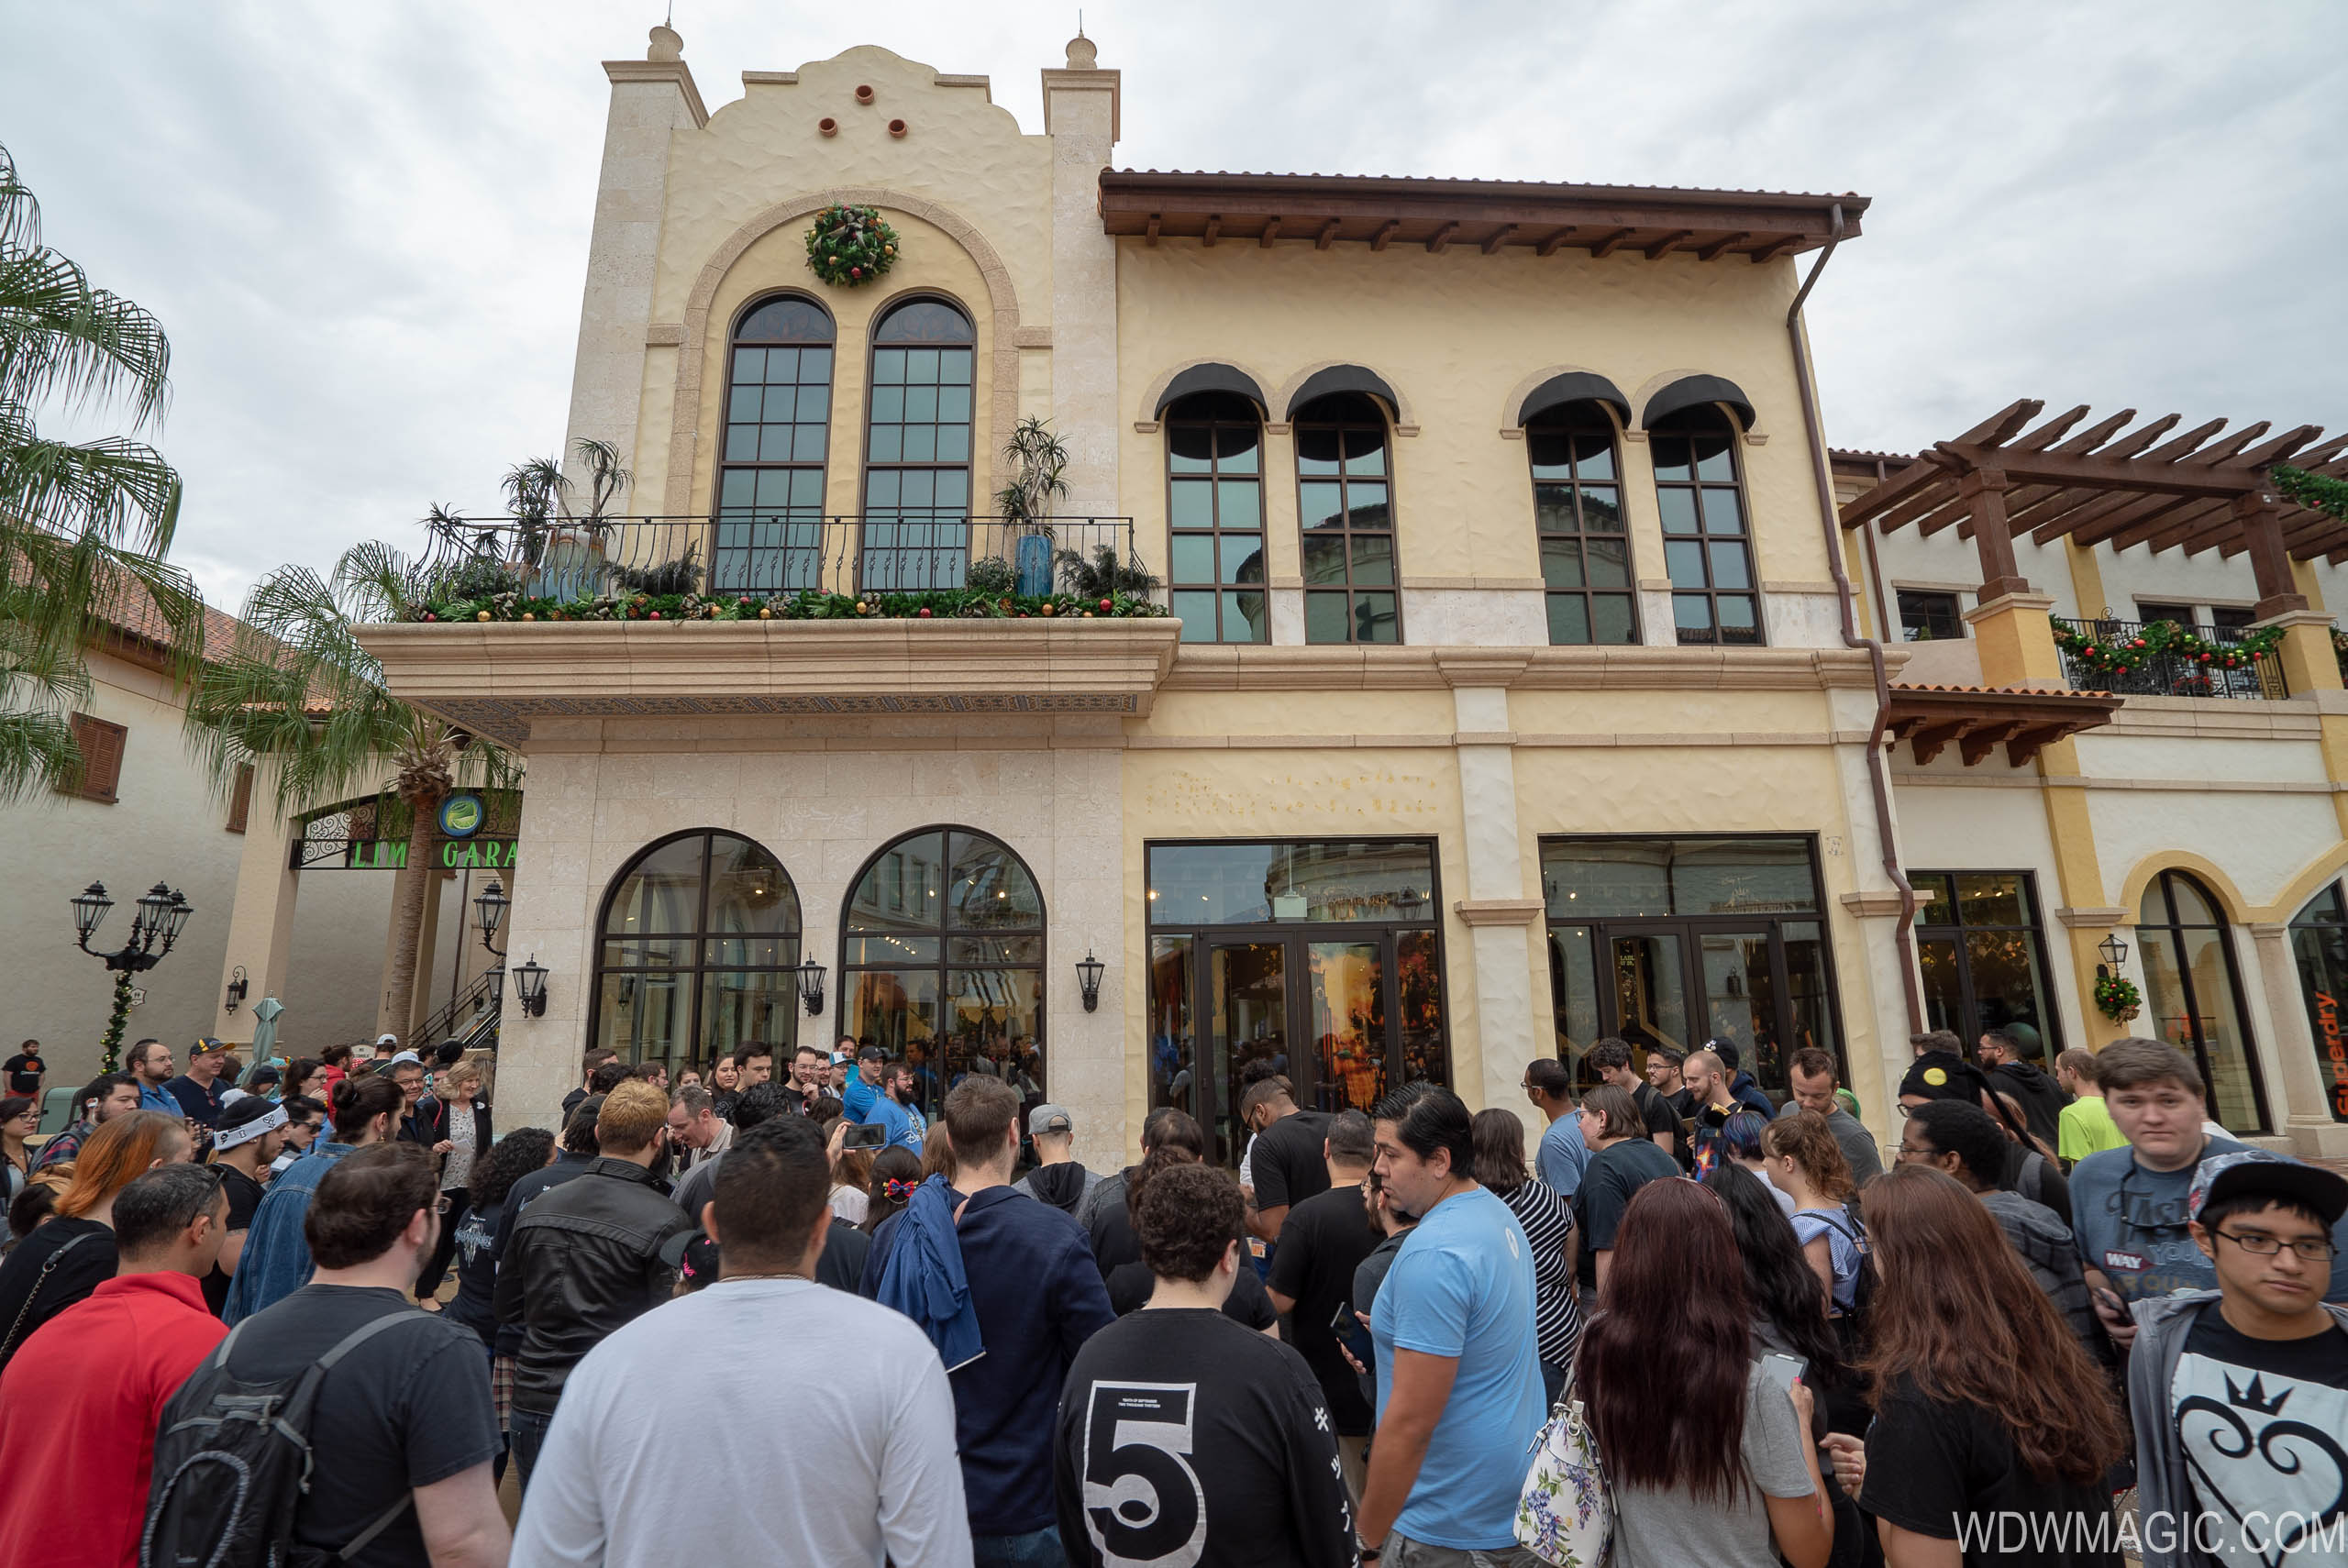 Kingdom Hearts III preview at Disney Springs